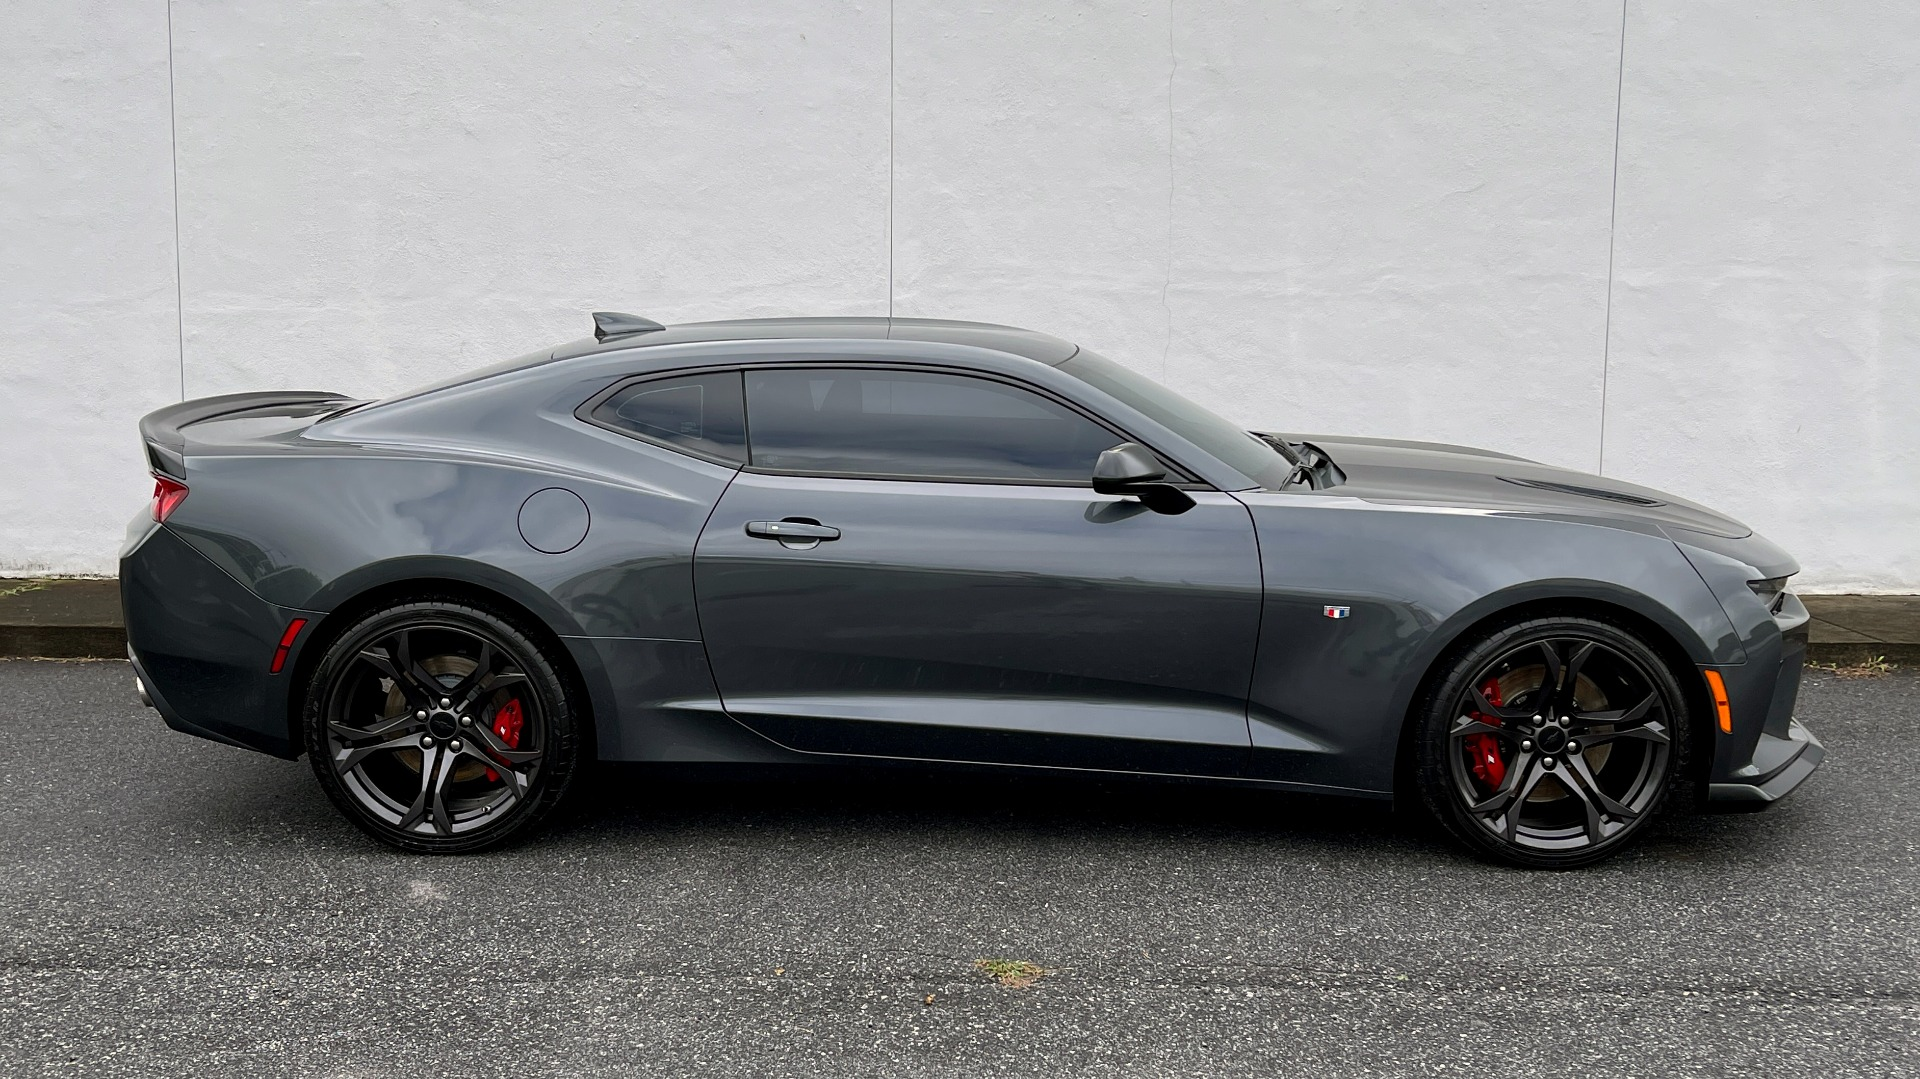 Used 2018 Chevrolet CAMARO 2SS / 6.2L V8 / MANUAL / 1LE TRACK PKG / NAV / BOSE / REARVIEW for sale $39,795 at Formula Imports in Charlotte NC 28227 5